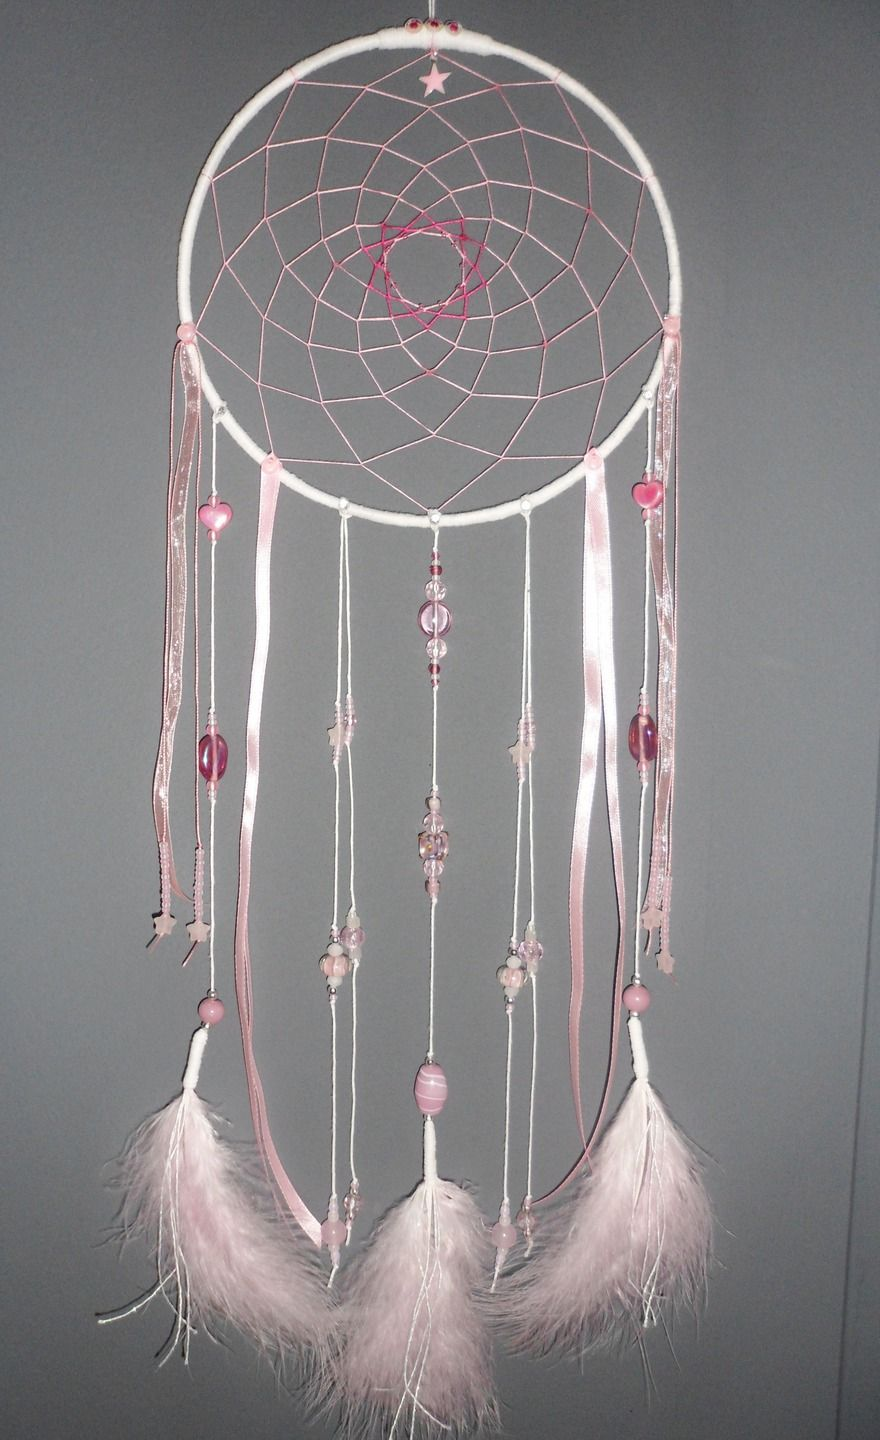 attrape r ves rose poudr dreamcatcher plumes perles et ficelle mes cr ations pinterest. Black Bedroom Furniture Sets. Home Design Ideas